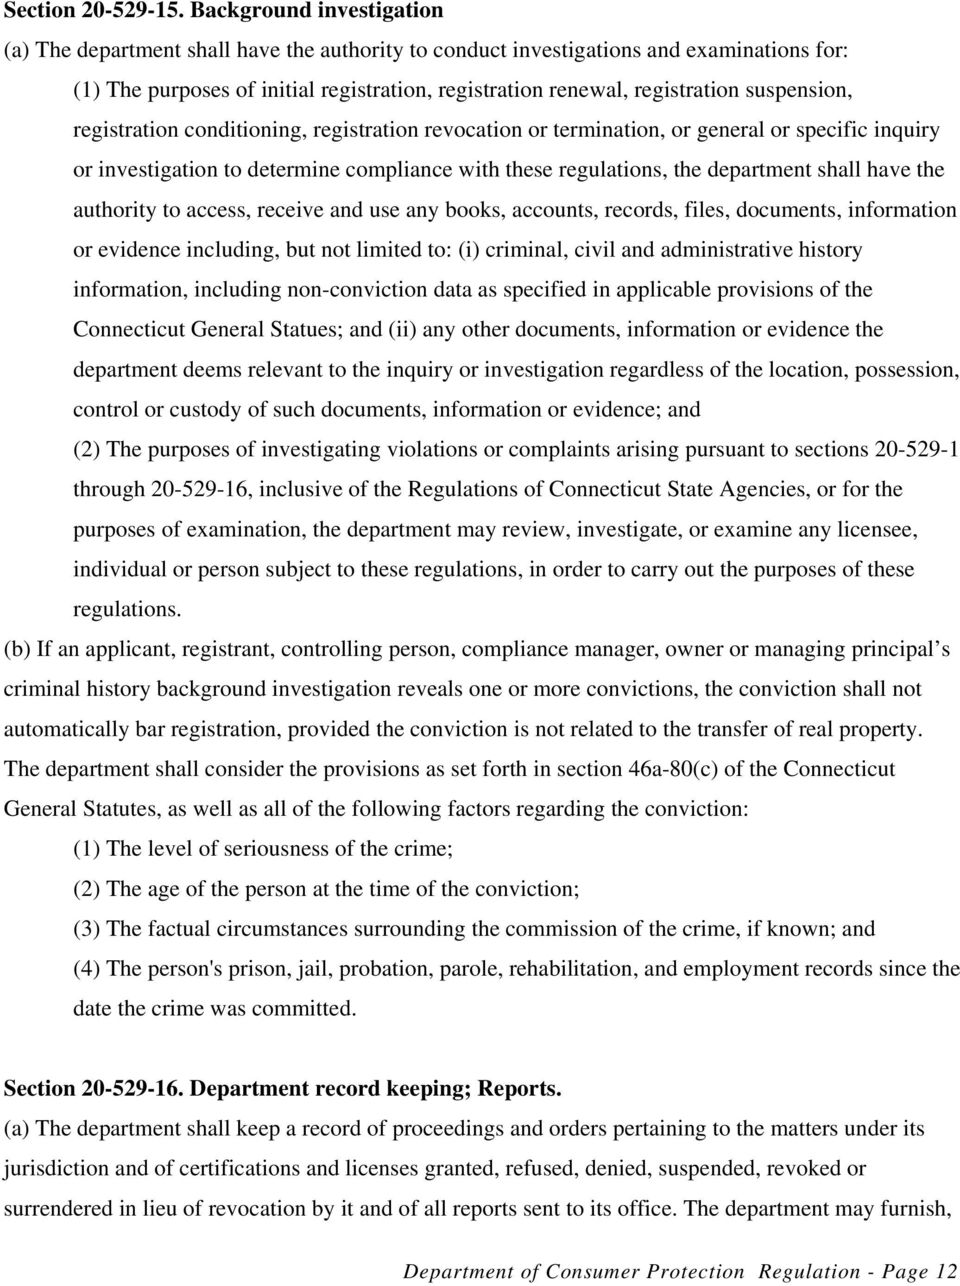 suspension, registration conditioning, registration revocation or termination, or general or specific inquiry or investigation to determine compliance with these regulations, the department shall